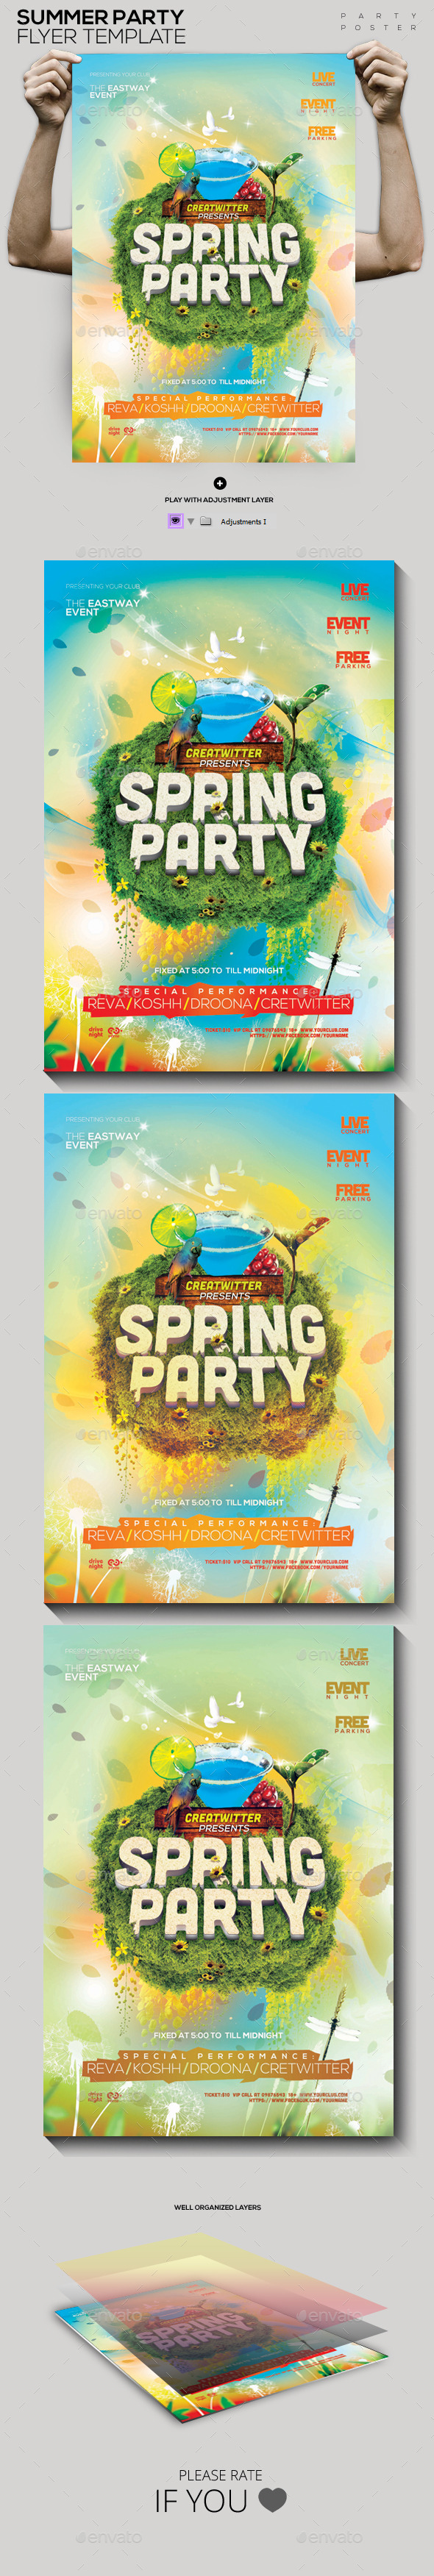 GraphicRiver Spring Party Template PSD Flyer Poster 10720925